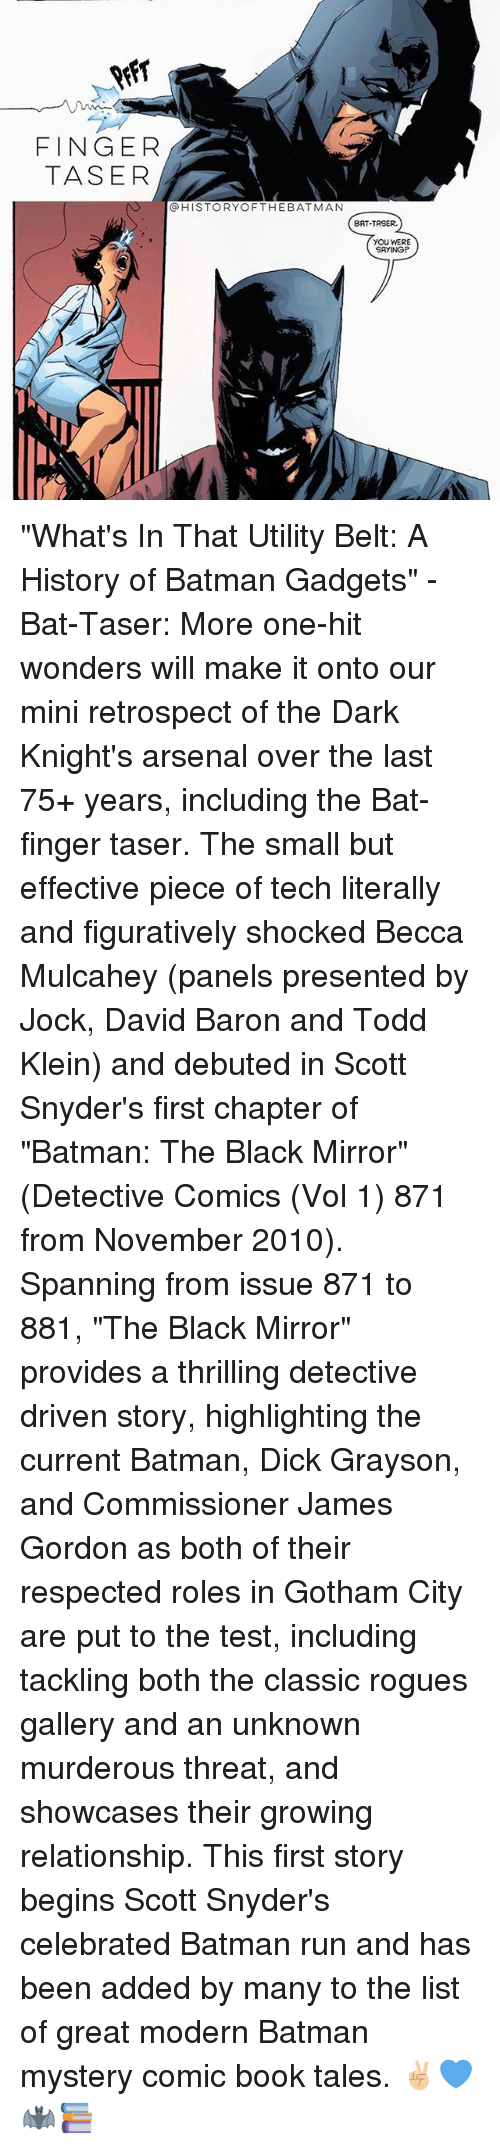 """figuratively: FINGER  TASER  @HISTORYOFTHEBATMAN  BAT-TASER.  YOU WERE  SAYING """"What's In That Utility Belt: A History of Batman Gadgets"""" - Bat-Taser: More one-hit wonders will make it onto our mini retrospect of the Dark Knight's arsenal over the last 75+ years, including the Bat-finger taser. The small but effective piece of tech literally and figuratively shocked Becca Mulcahey (panels presented by Jock, David Baron and Todd Klein) and debuted in Scott Snyder's first chapter of """"Batman: The Black Mirror"""" (Detective Comics (Vol 1) 871 from November 2010). Spanning from issue 871 to 881, """"The Black Mirror"""" provides a thrilling detective driven story, highlighting the current Batman, Dick Grayson, and Commissioner James Gordon as both of their respected roles in Gotham City are put to the test, including tackling both the classic rogues gallery and an unknown murderous threat, and showcases their growing relationship. This first story begins Scott Snyder's celebrated Batman run and has been added by many to the list of great modern Batman mystery comic book tales. ✌🏼💙🦇📚"""